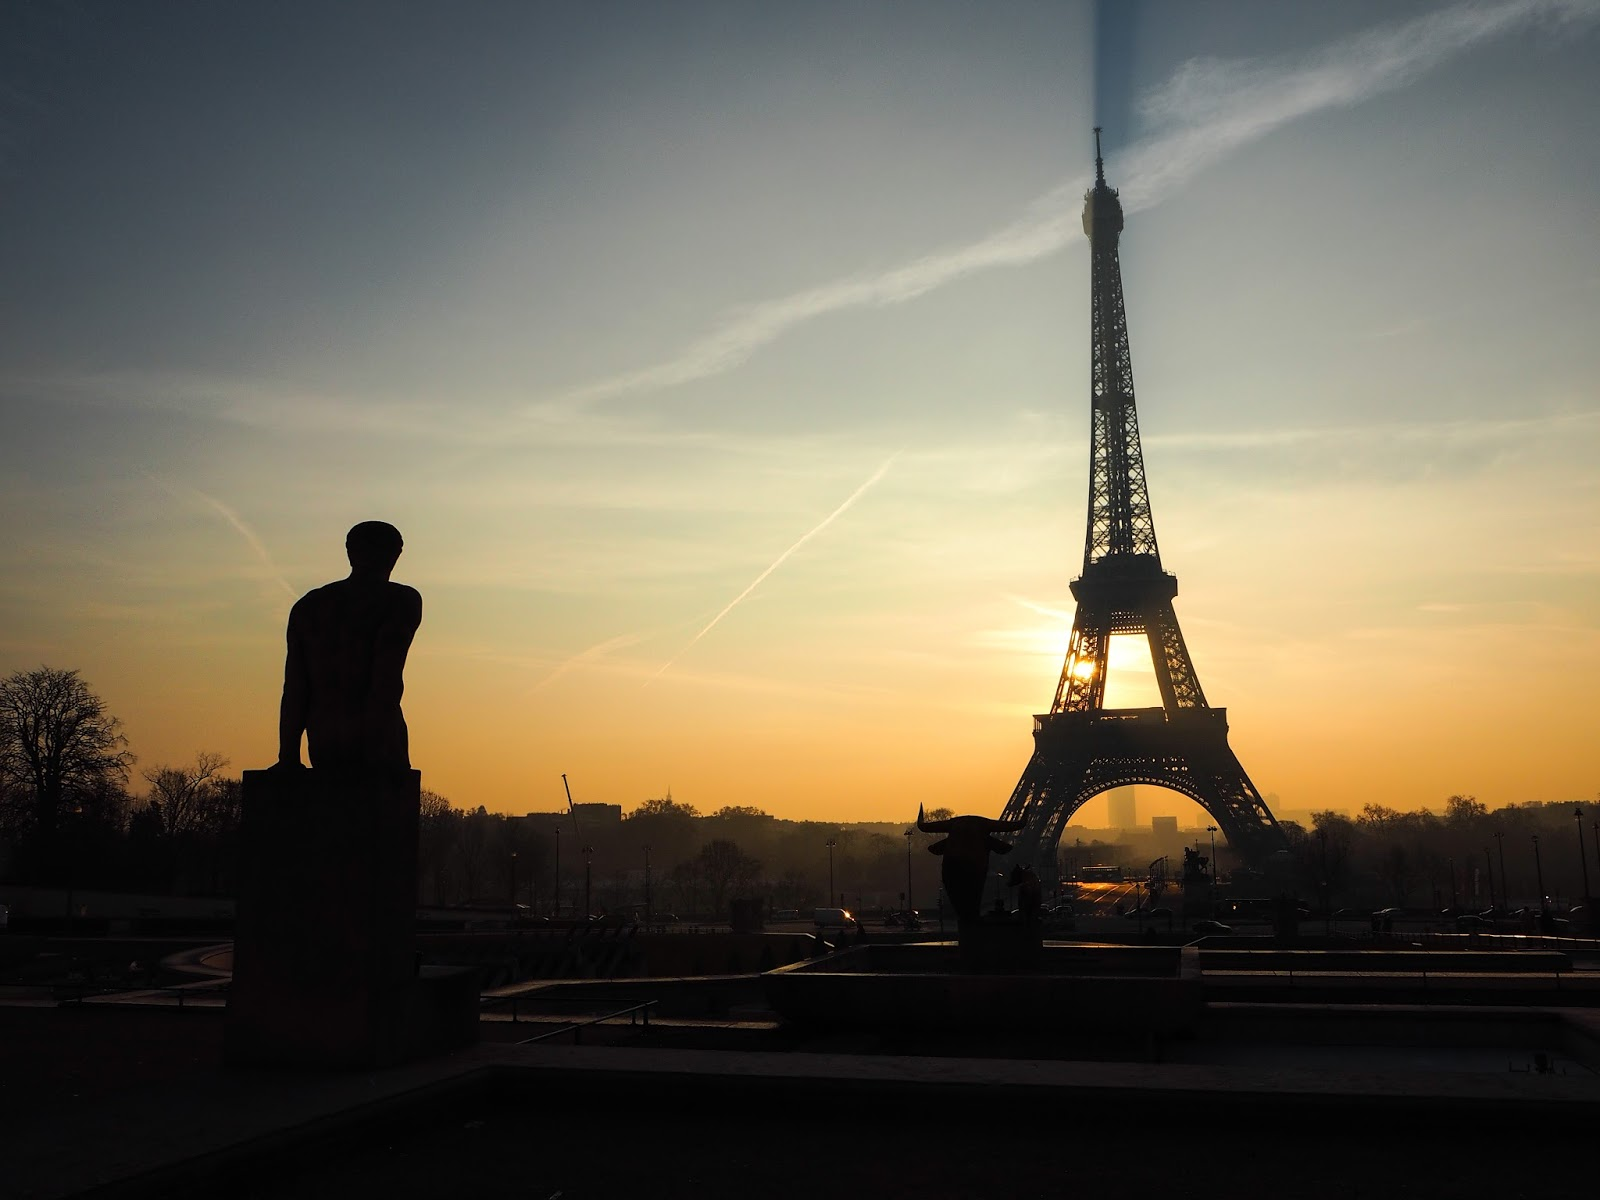 Paris City Guide - What to See - Eiffel Tower